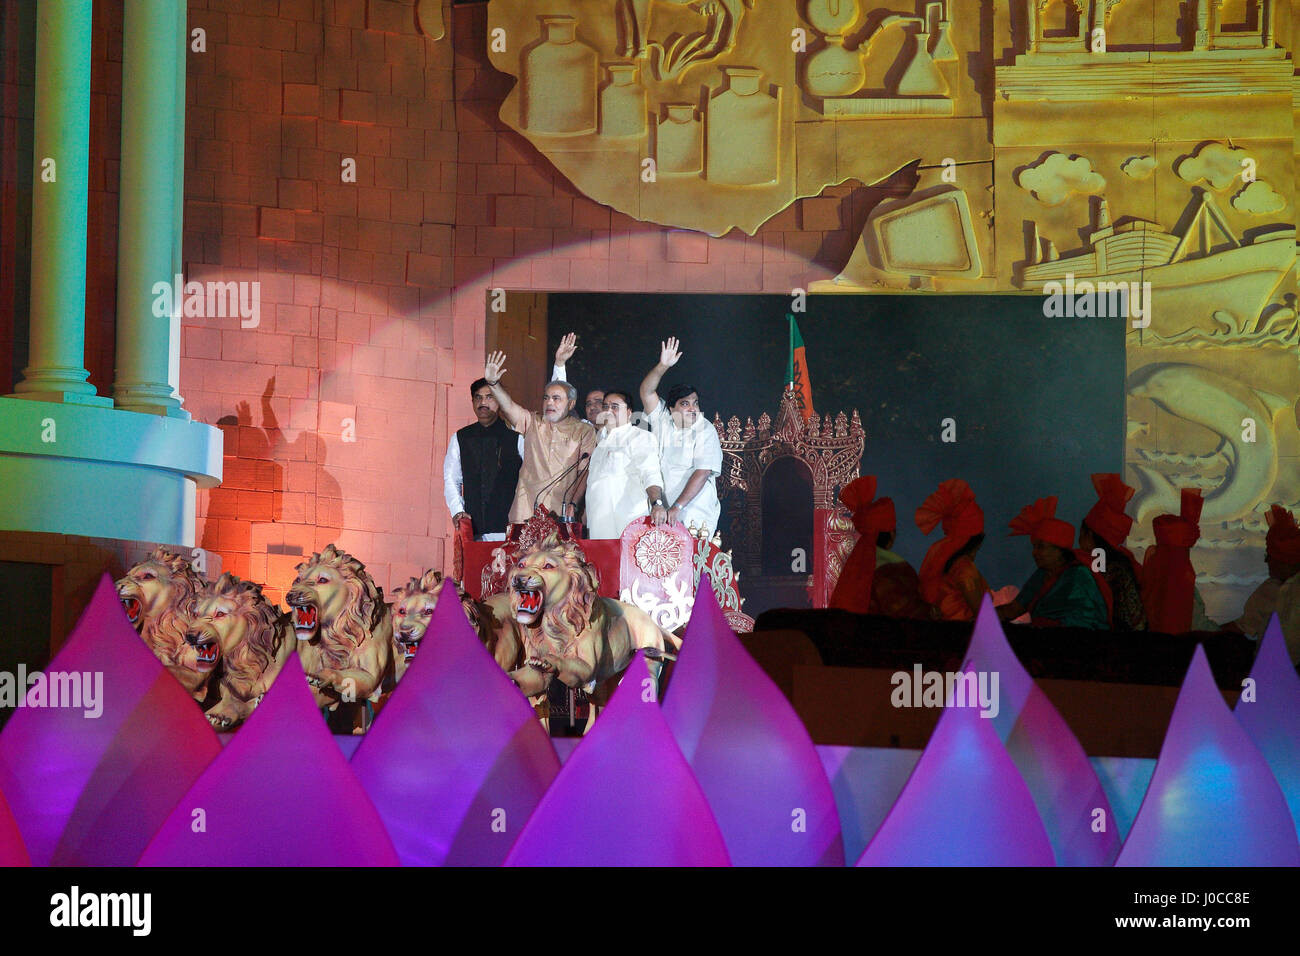 Bjp leaders and members on stage, mumbai, maharashtra, india - Stock Image